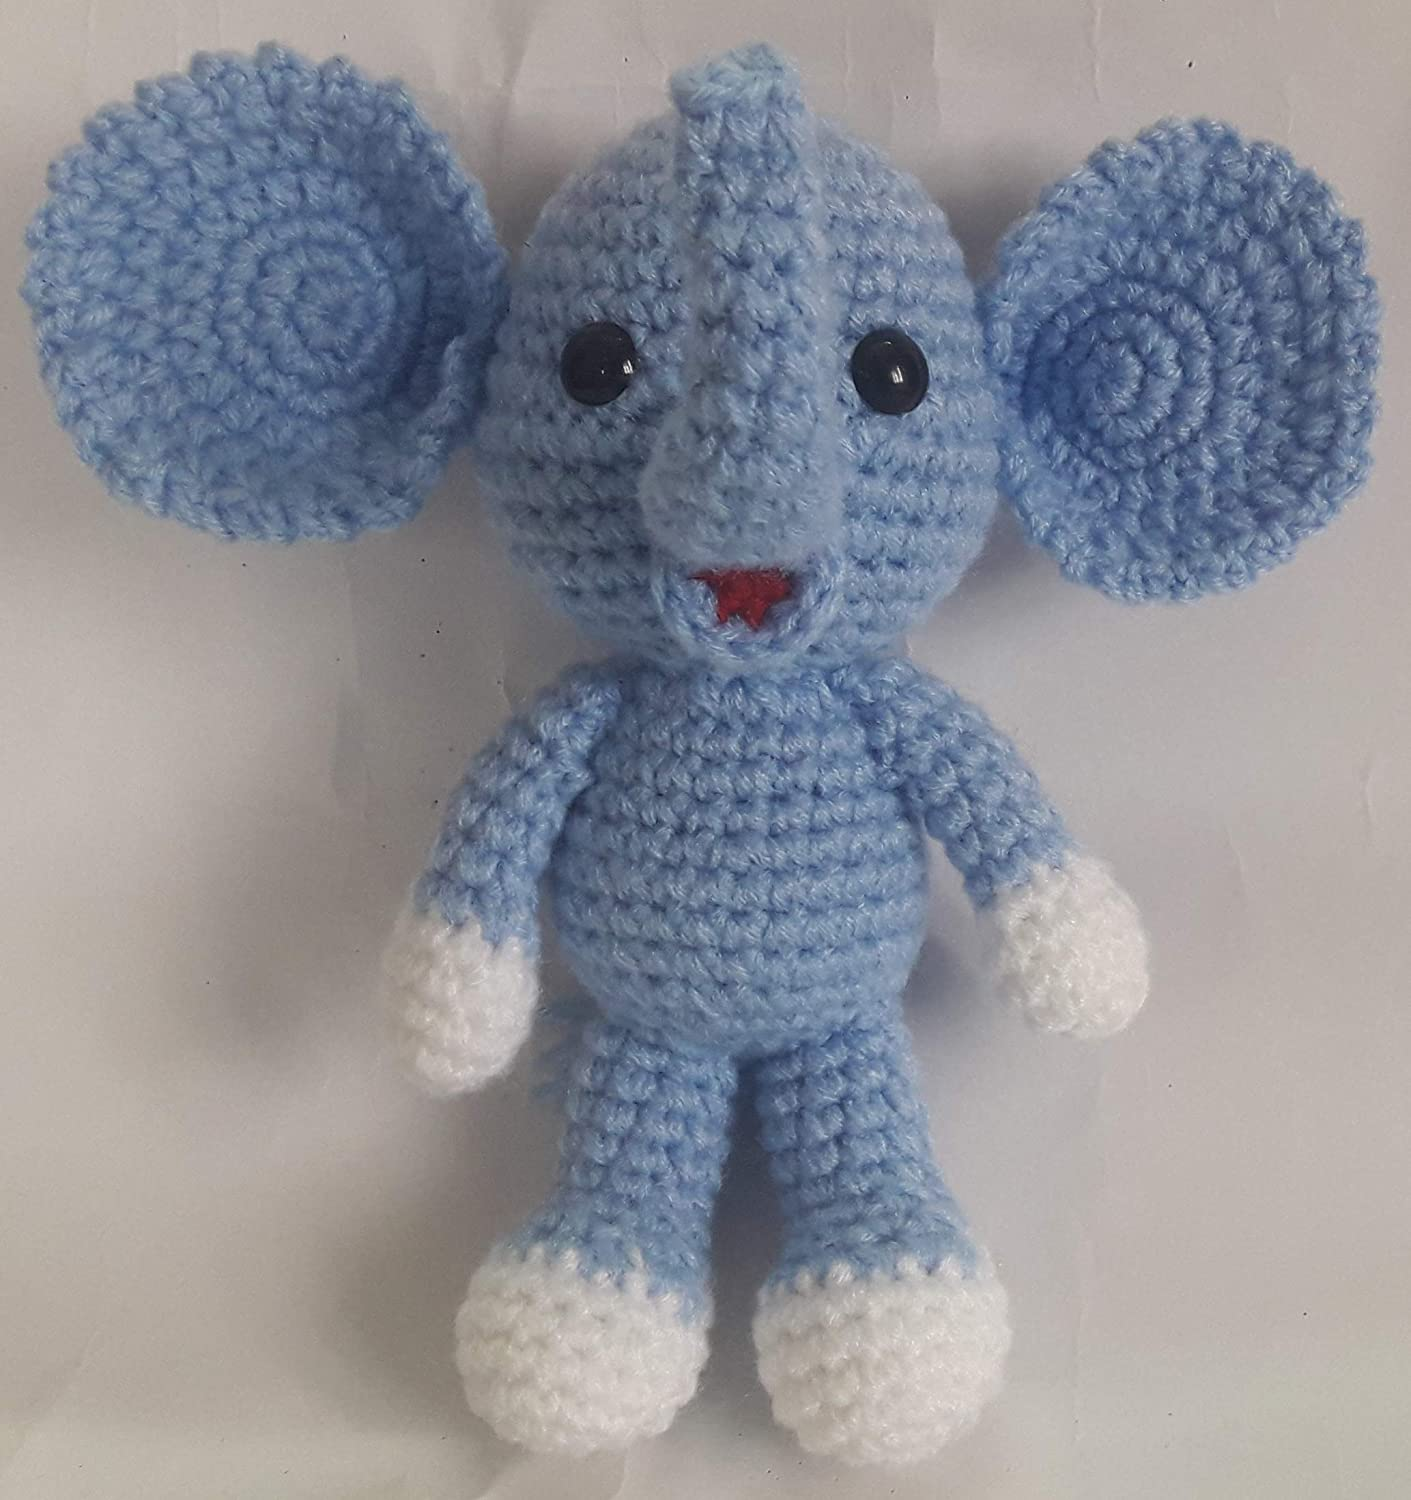 The Sweetest Crochet Elephant Patterns To Try | The WHOot | 1500x1411